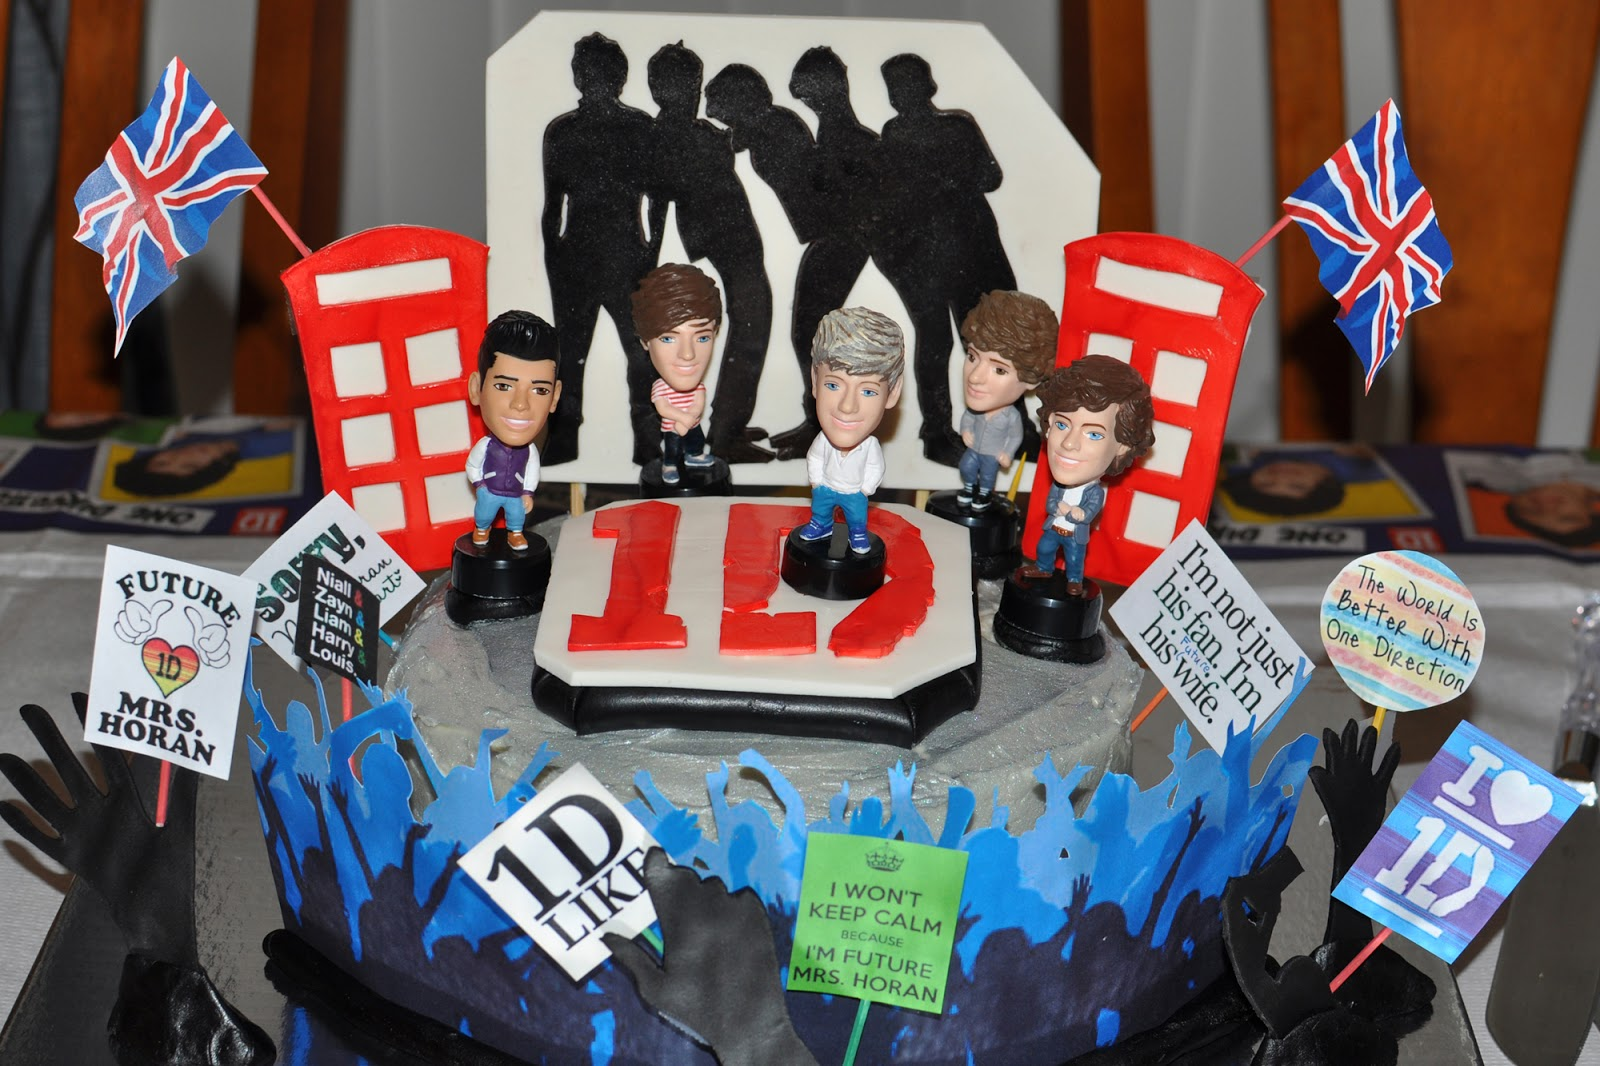 The Bake More One Direction In Concert Cake